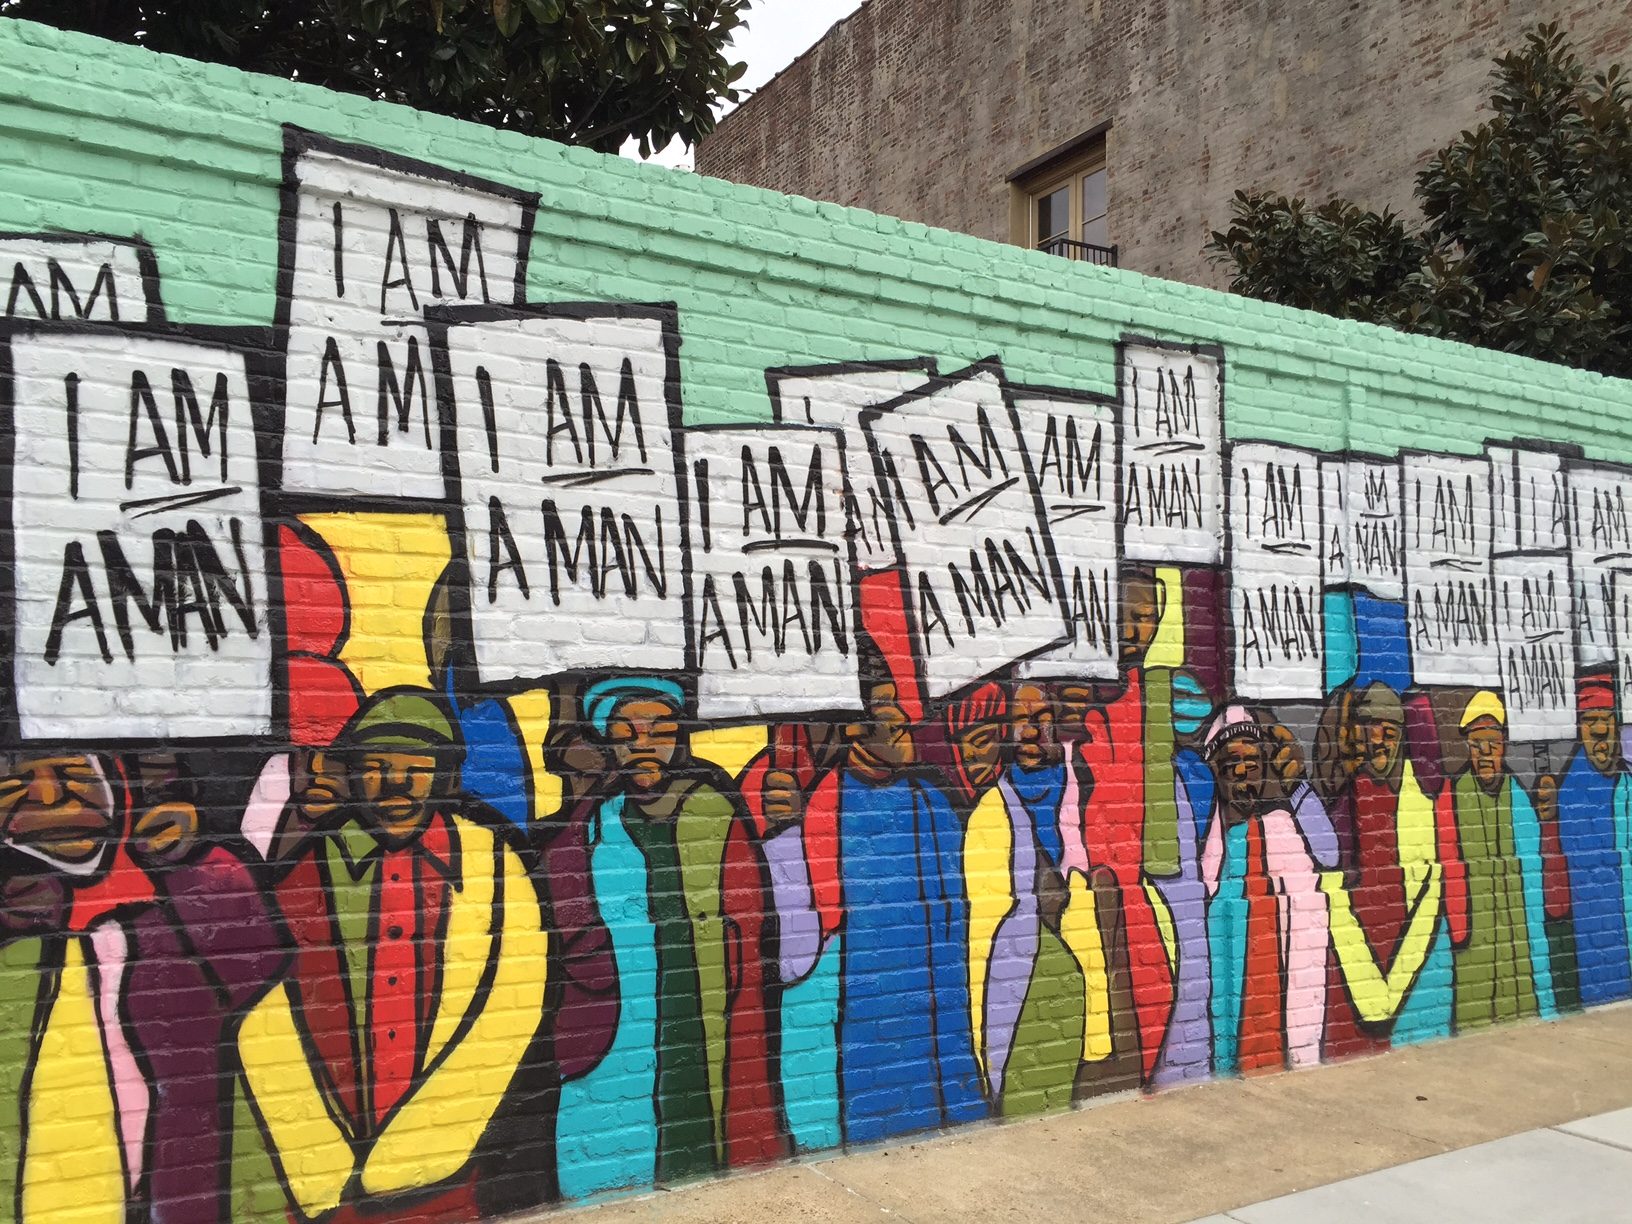 A mural near the National Civil Rights Museum in Memphis, Tennessee.